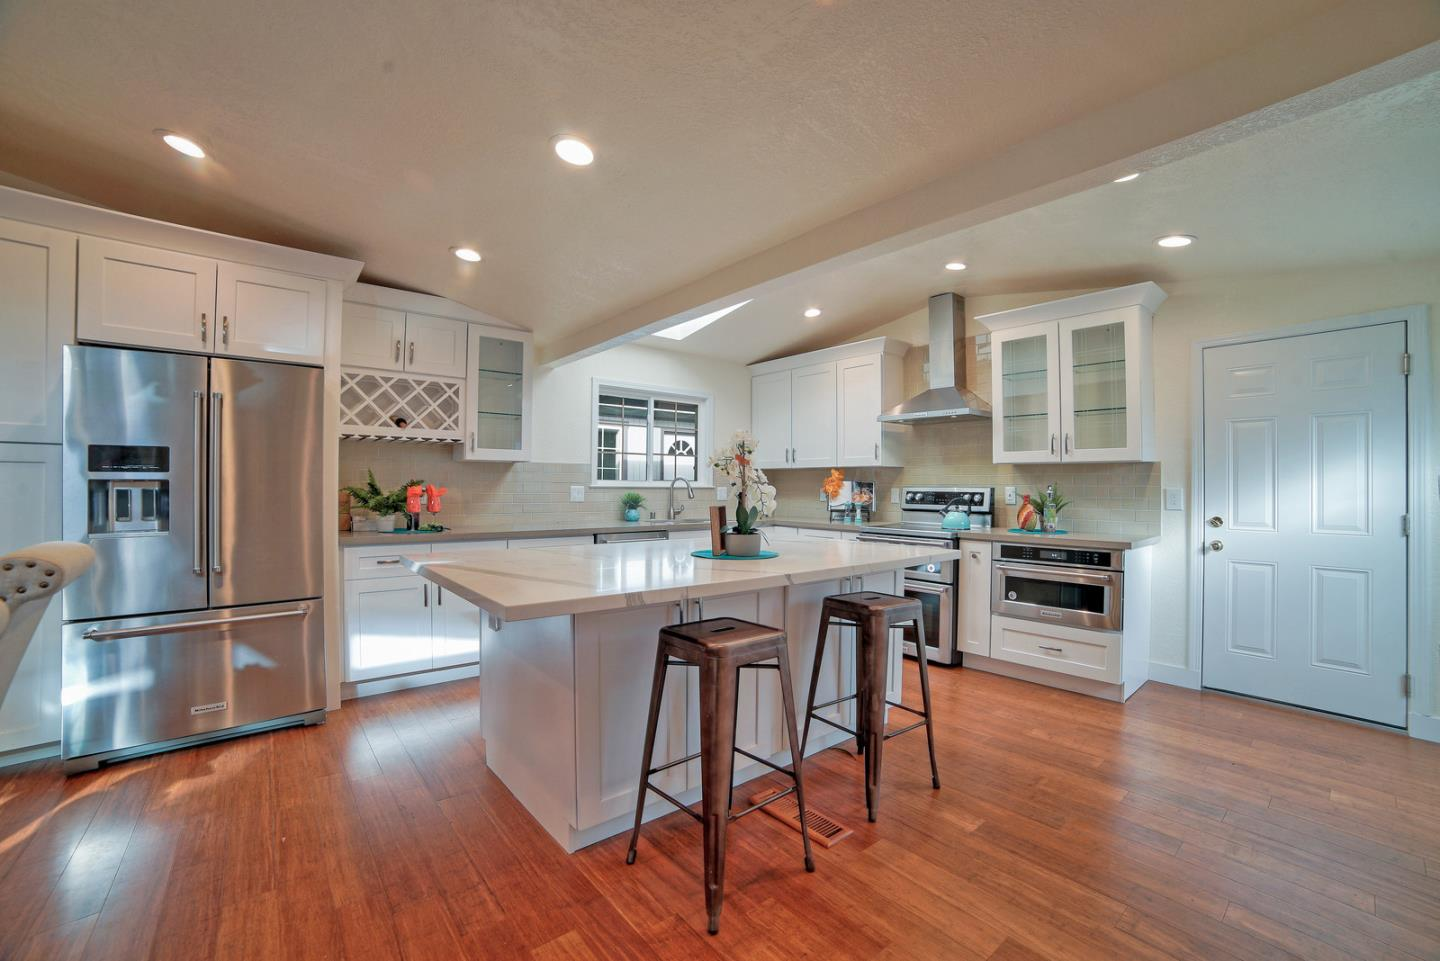 336 Burnett AVE, Santa Clara, California